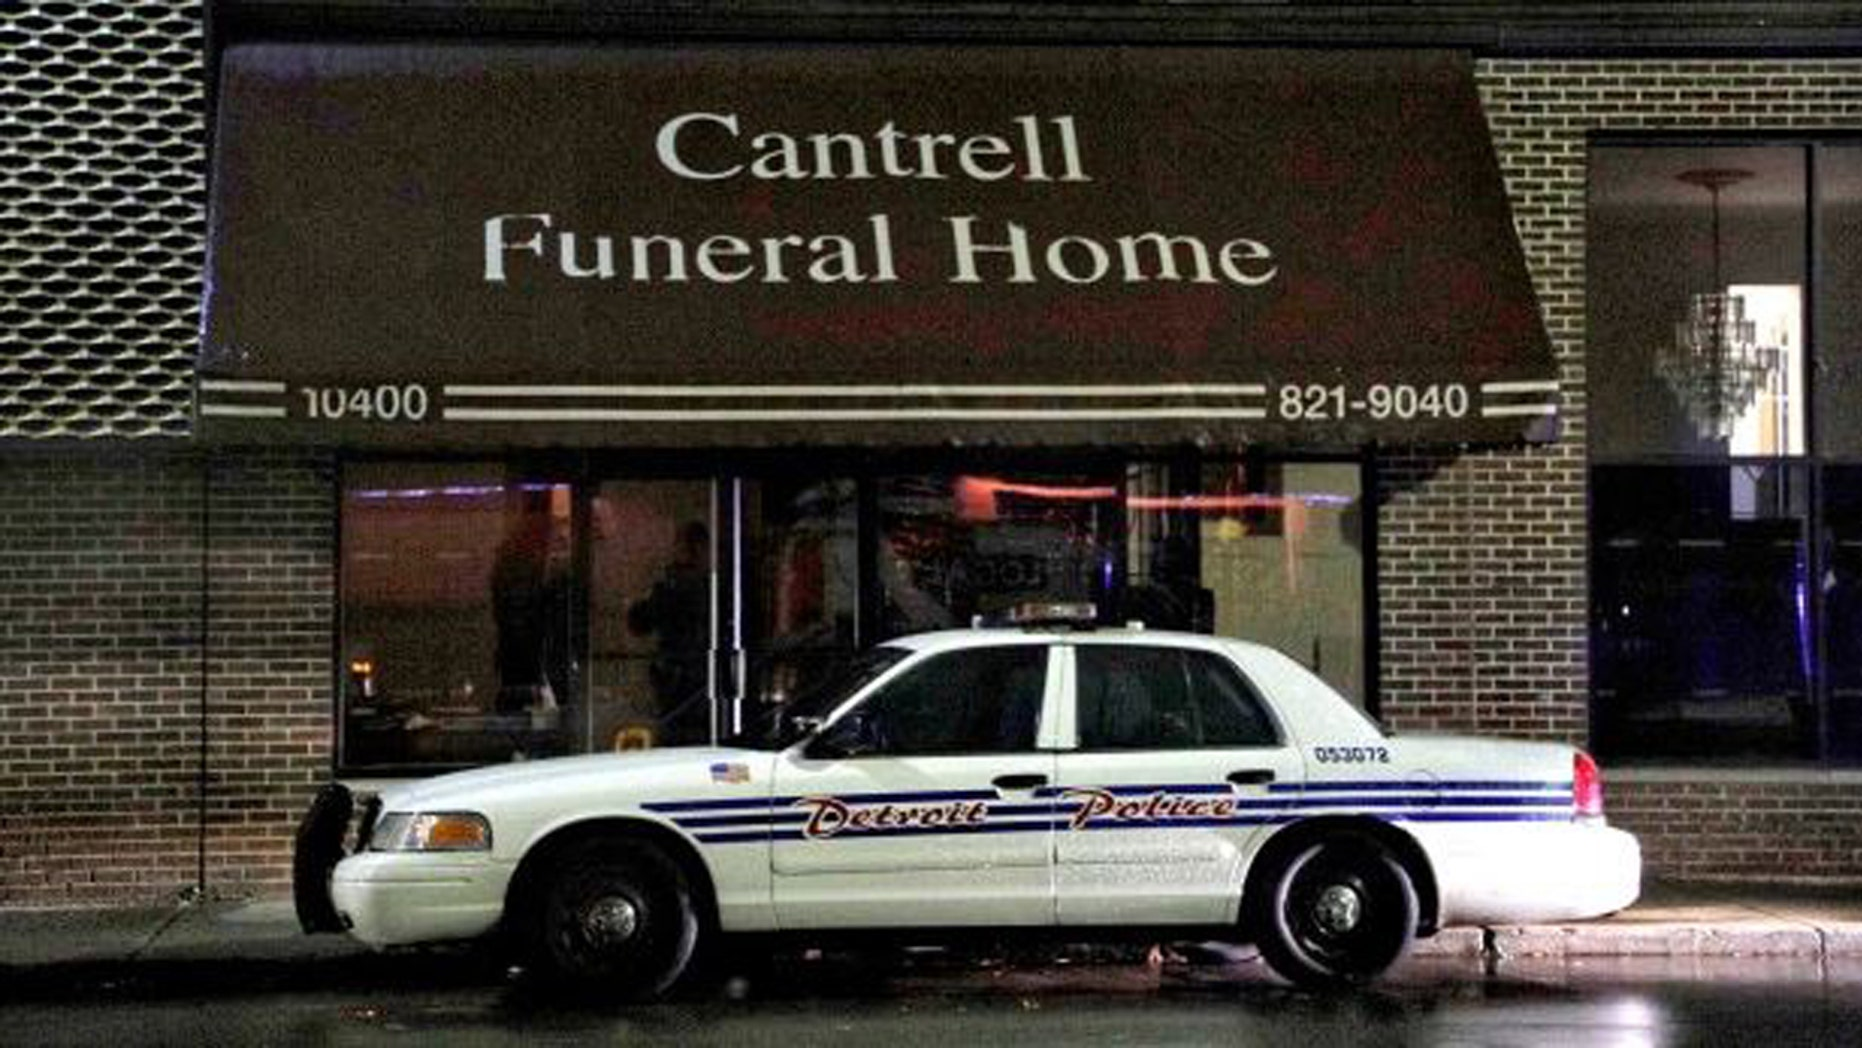 A Detroit Police vehicle is parked outside the Cantrell Funeral Home in Detroit on Friday, Oct. 12, 2018.